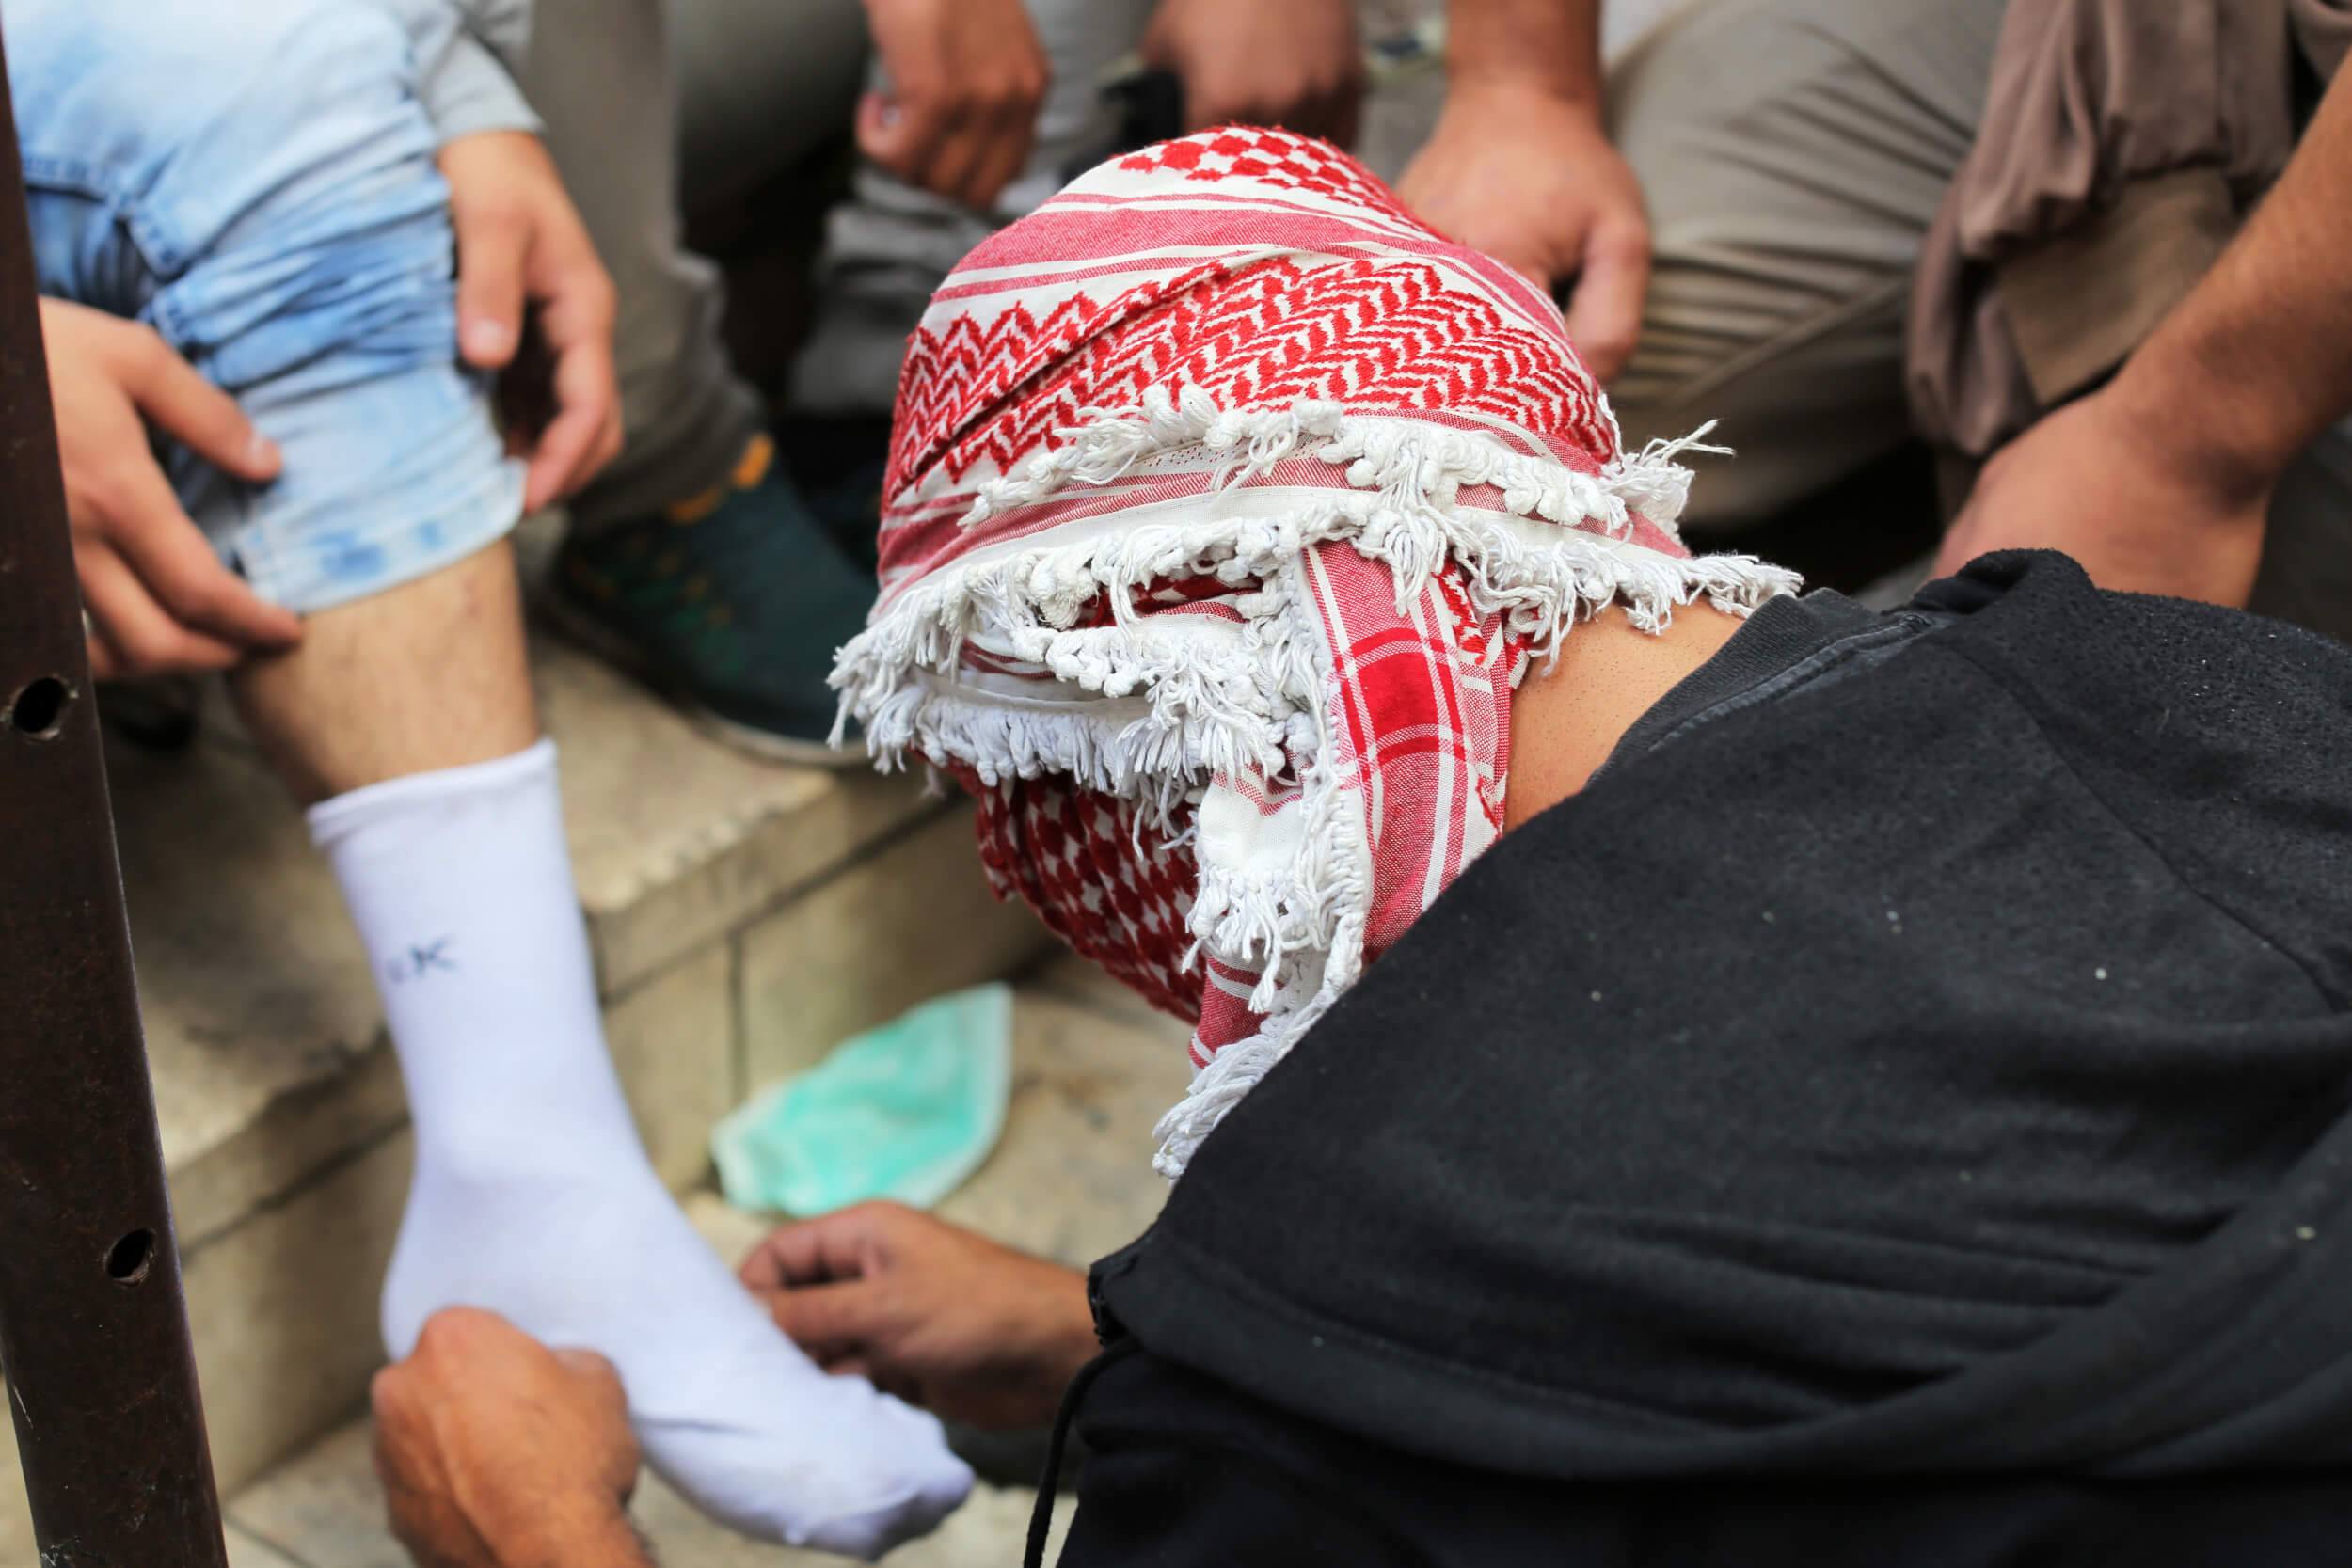 One protester examines the leg of another after he was hit with a tear gas canister during clashes. A hit with a canister can break the skin, cause bruising and chemical burns. (Photo: Abed al Qaisi)